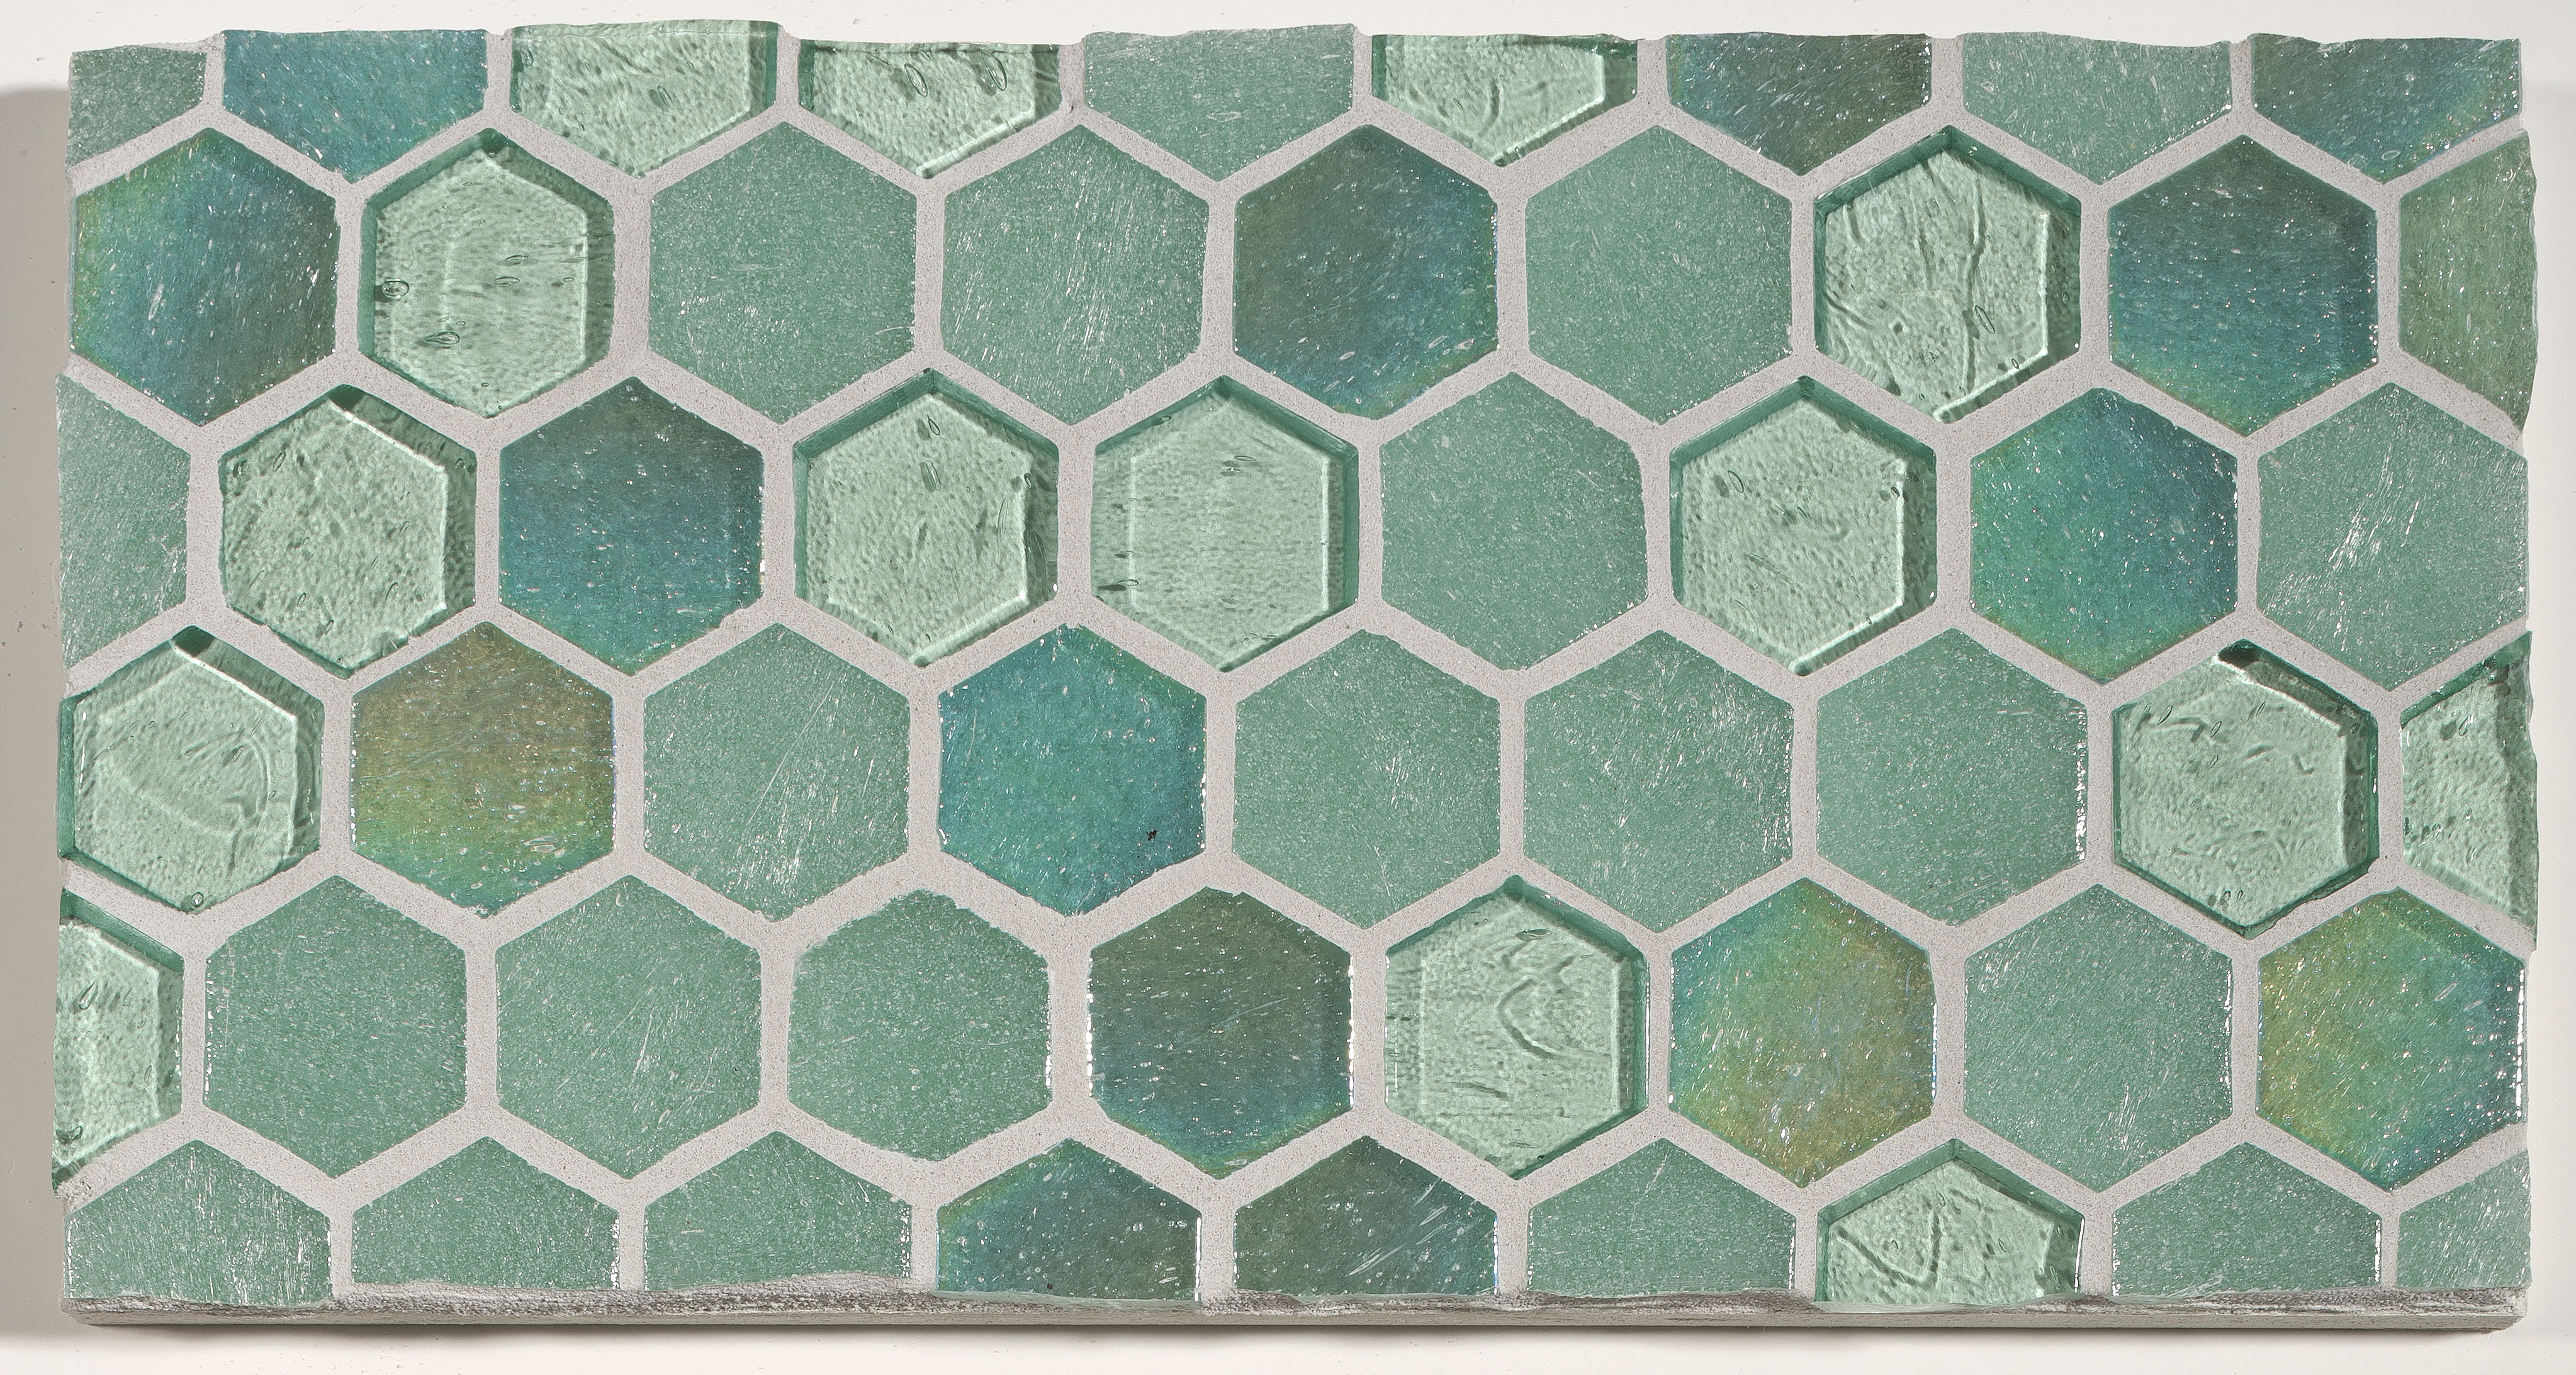 Genesee Ceramic Tile Tile Designs